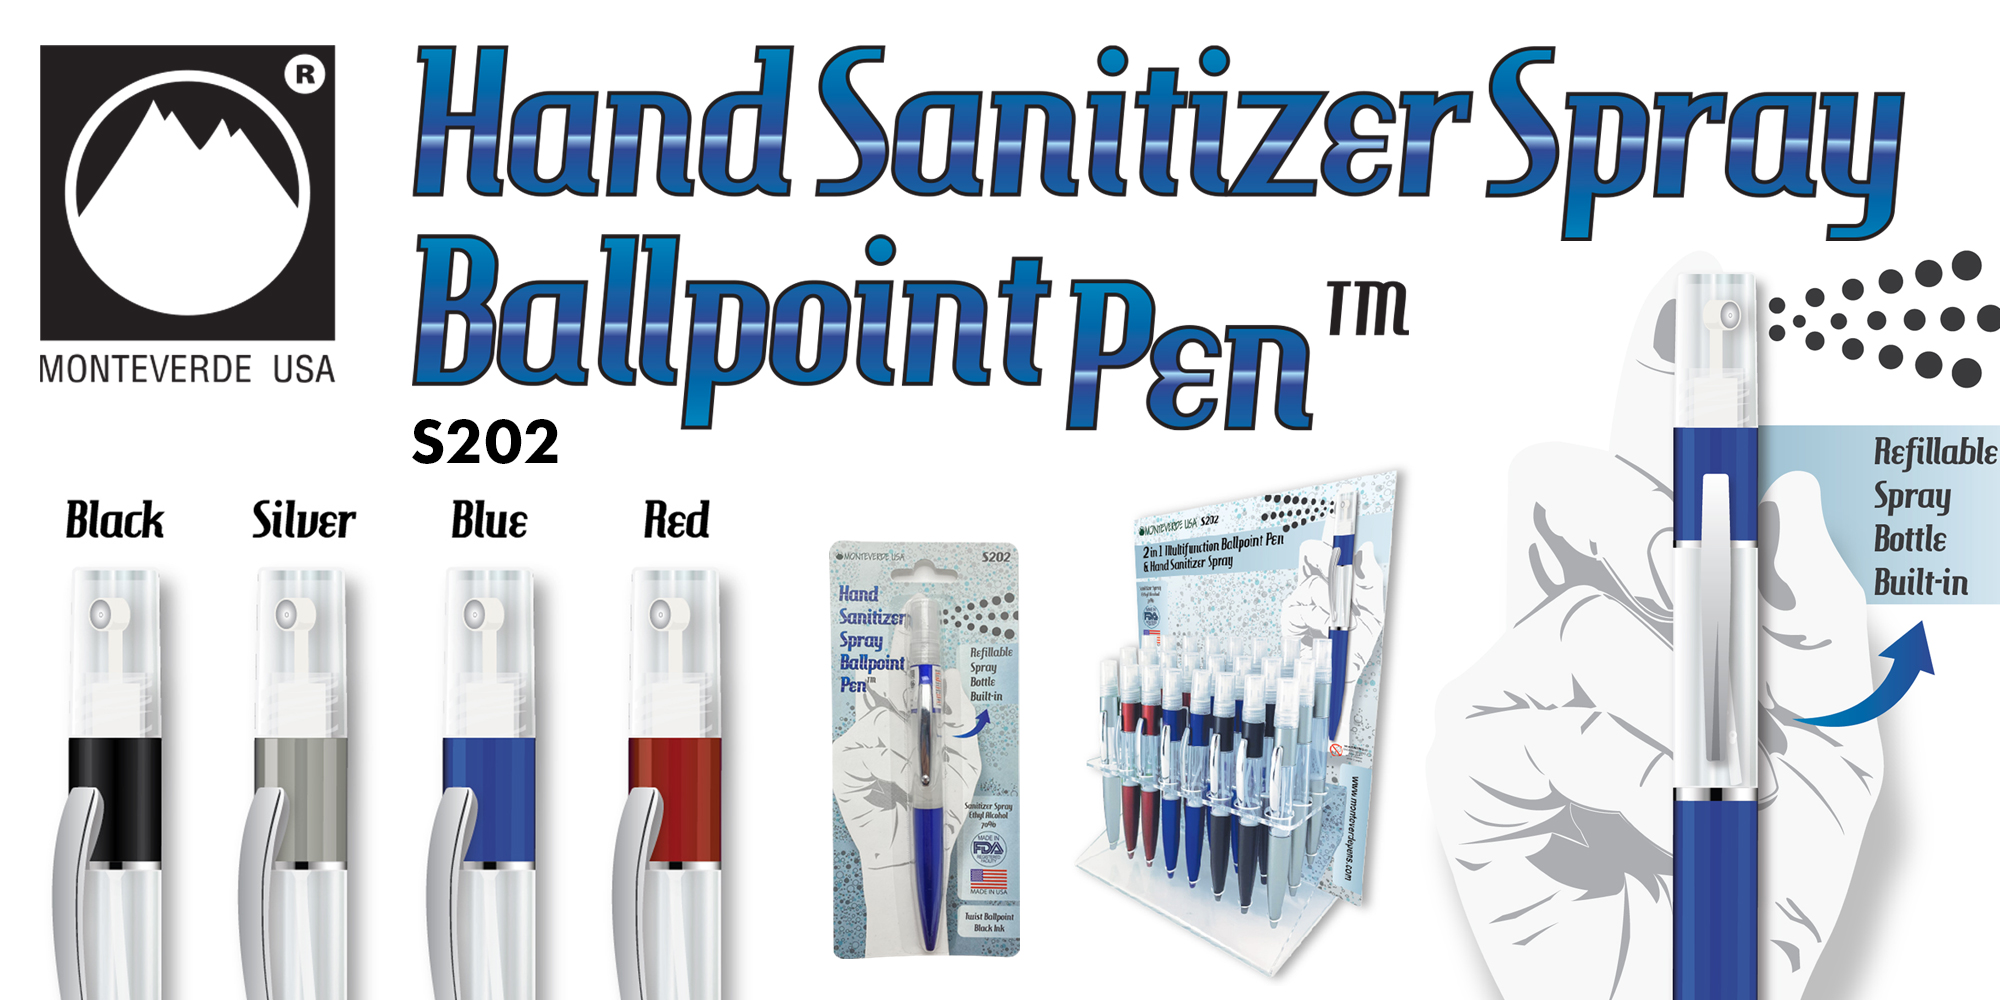 sani-pen-banner-new.jpg